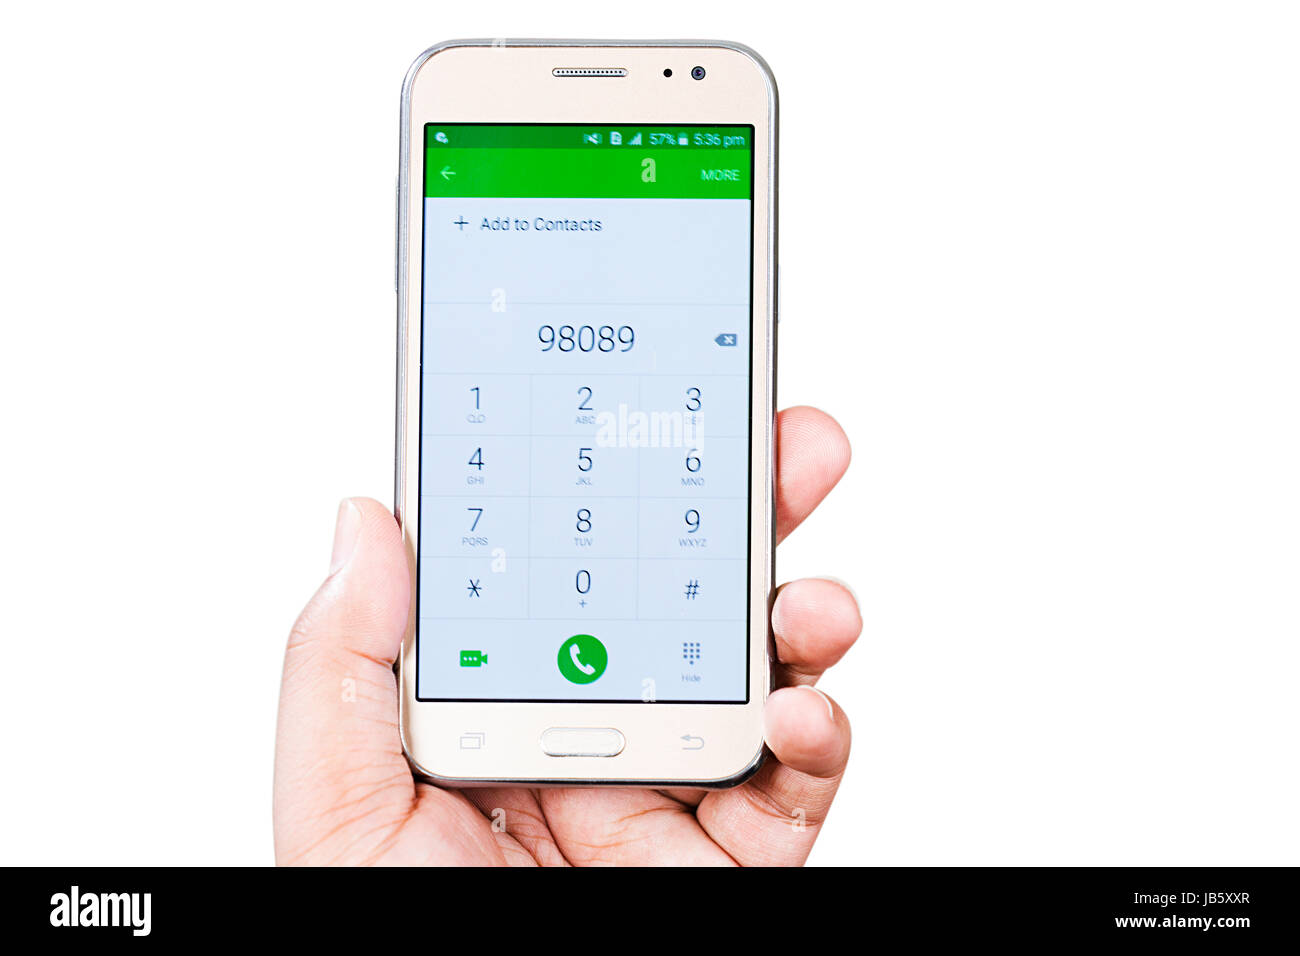 Alamy 144575055 1 Number Dialing Mobile Photo Screen Man Stock Phone Business - Part-of On